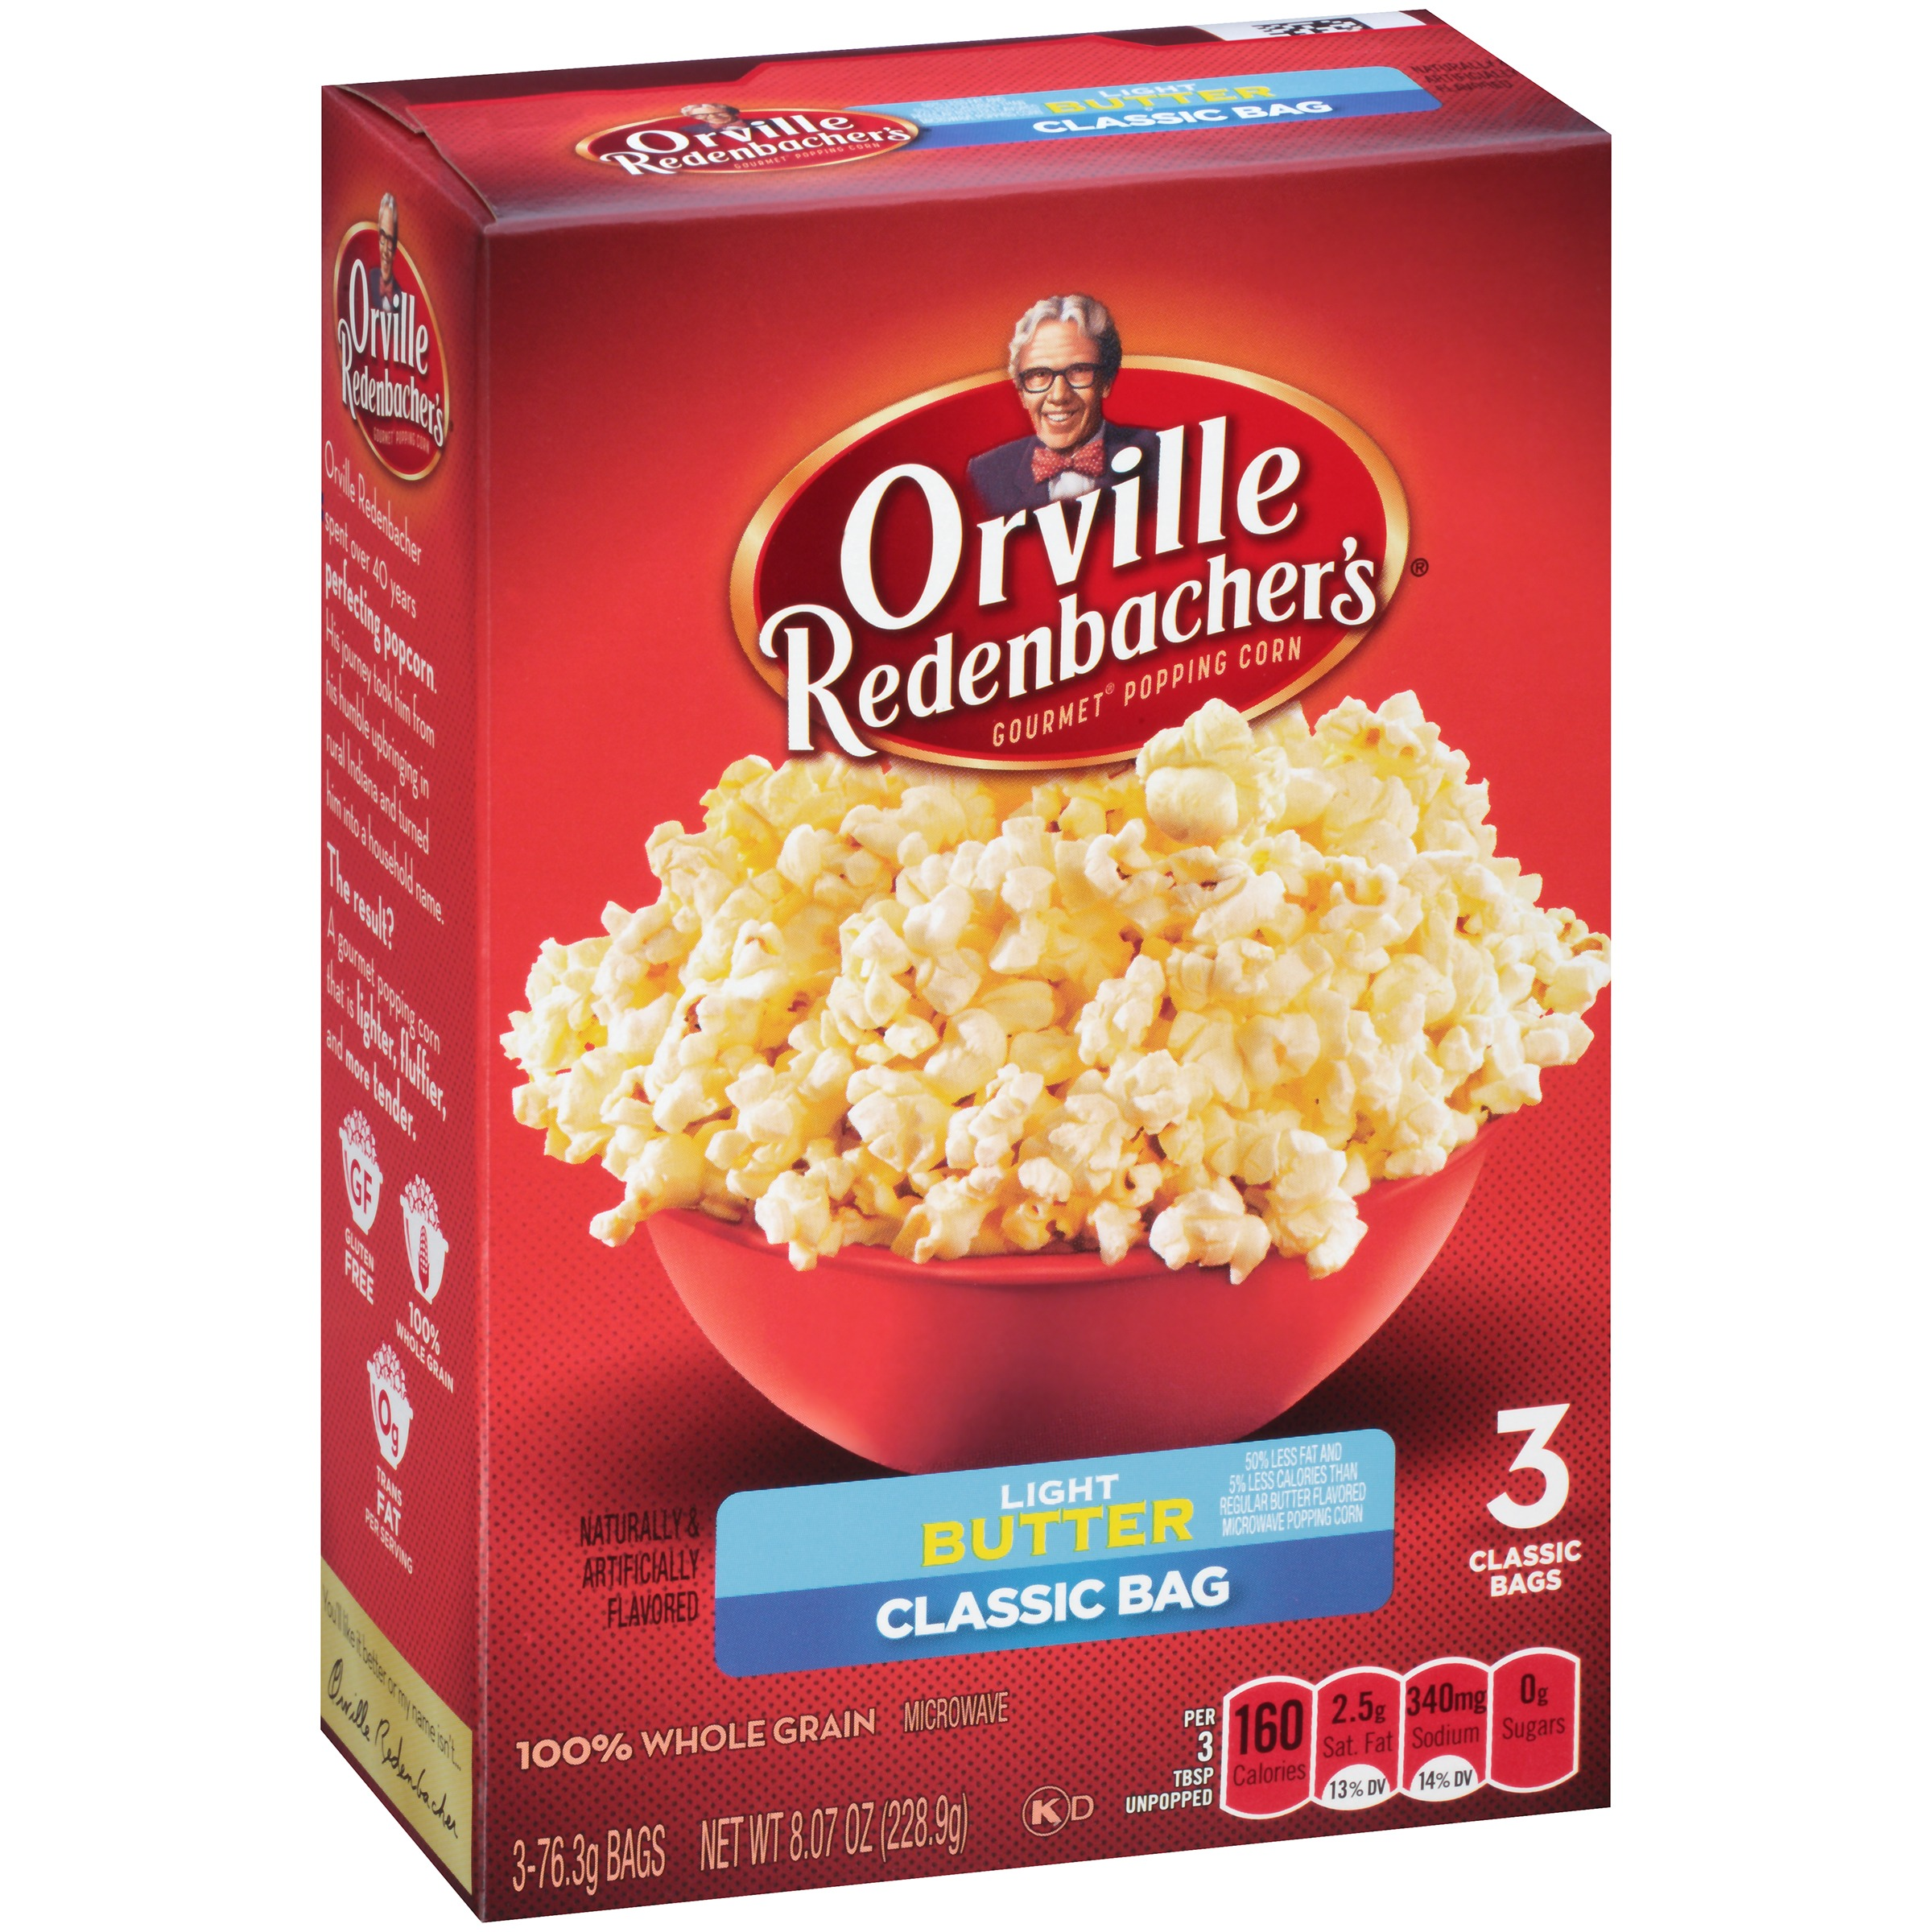 How many calories are in a bag of light popcorn?